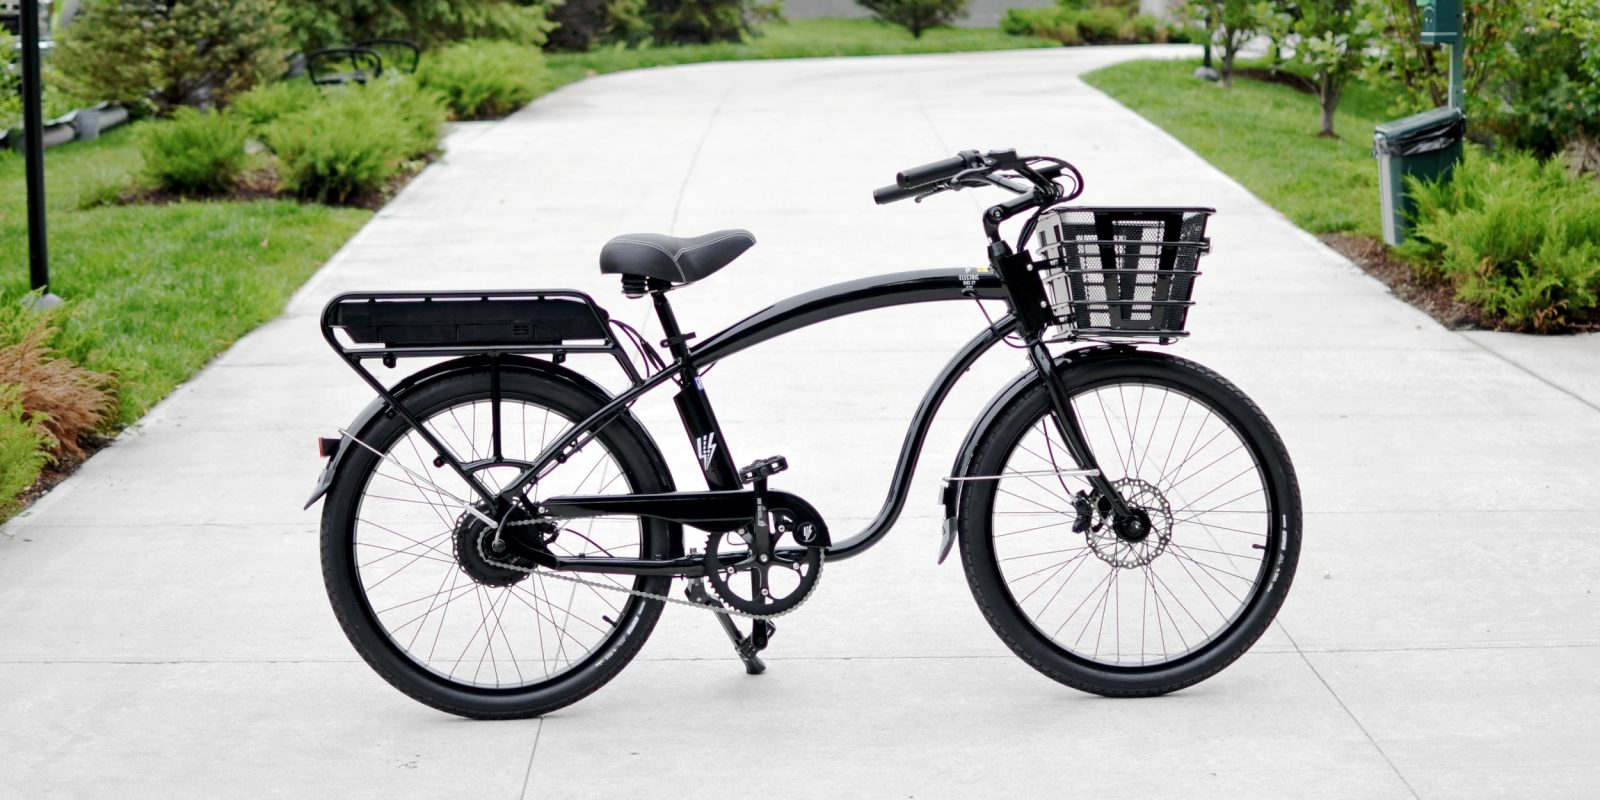 Review: Electric Bike Co's Model C is a beautiful, affordable 1.25 kW US-built cruiser